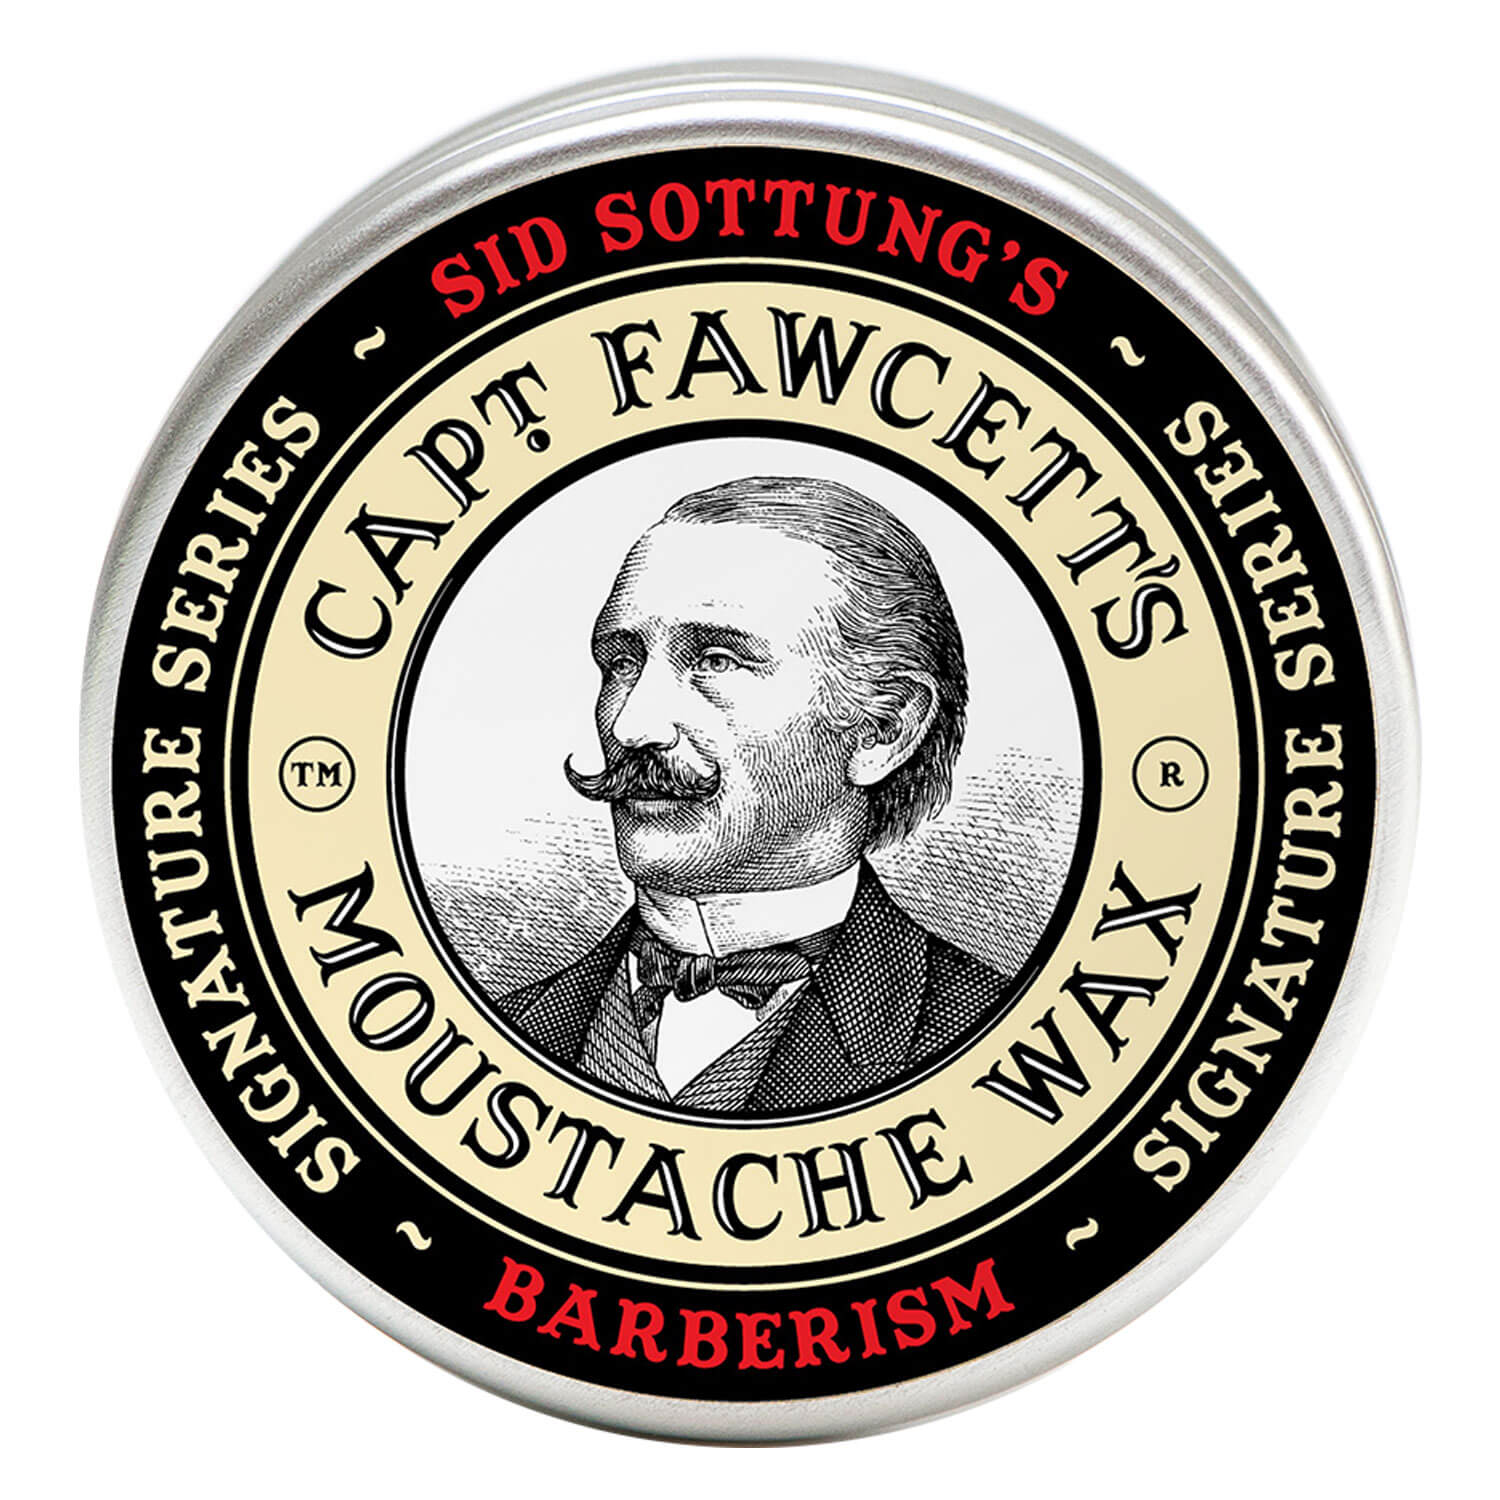 Capt. Fawcett Care - Sid Sottung's Barberism Moustache Wax